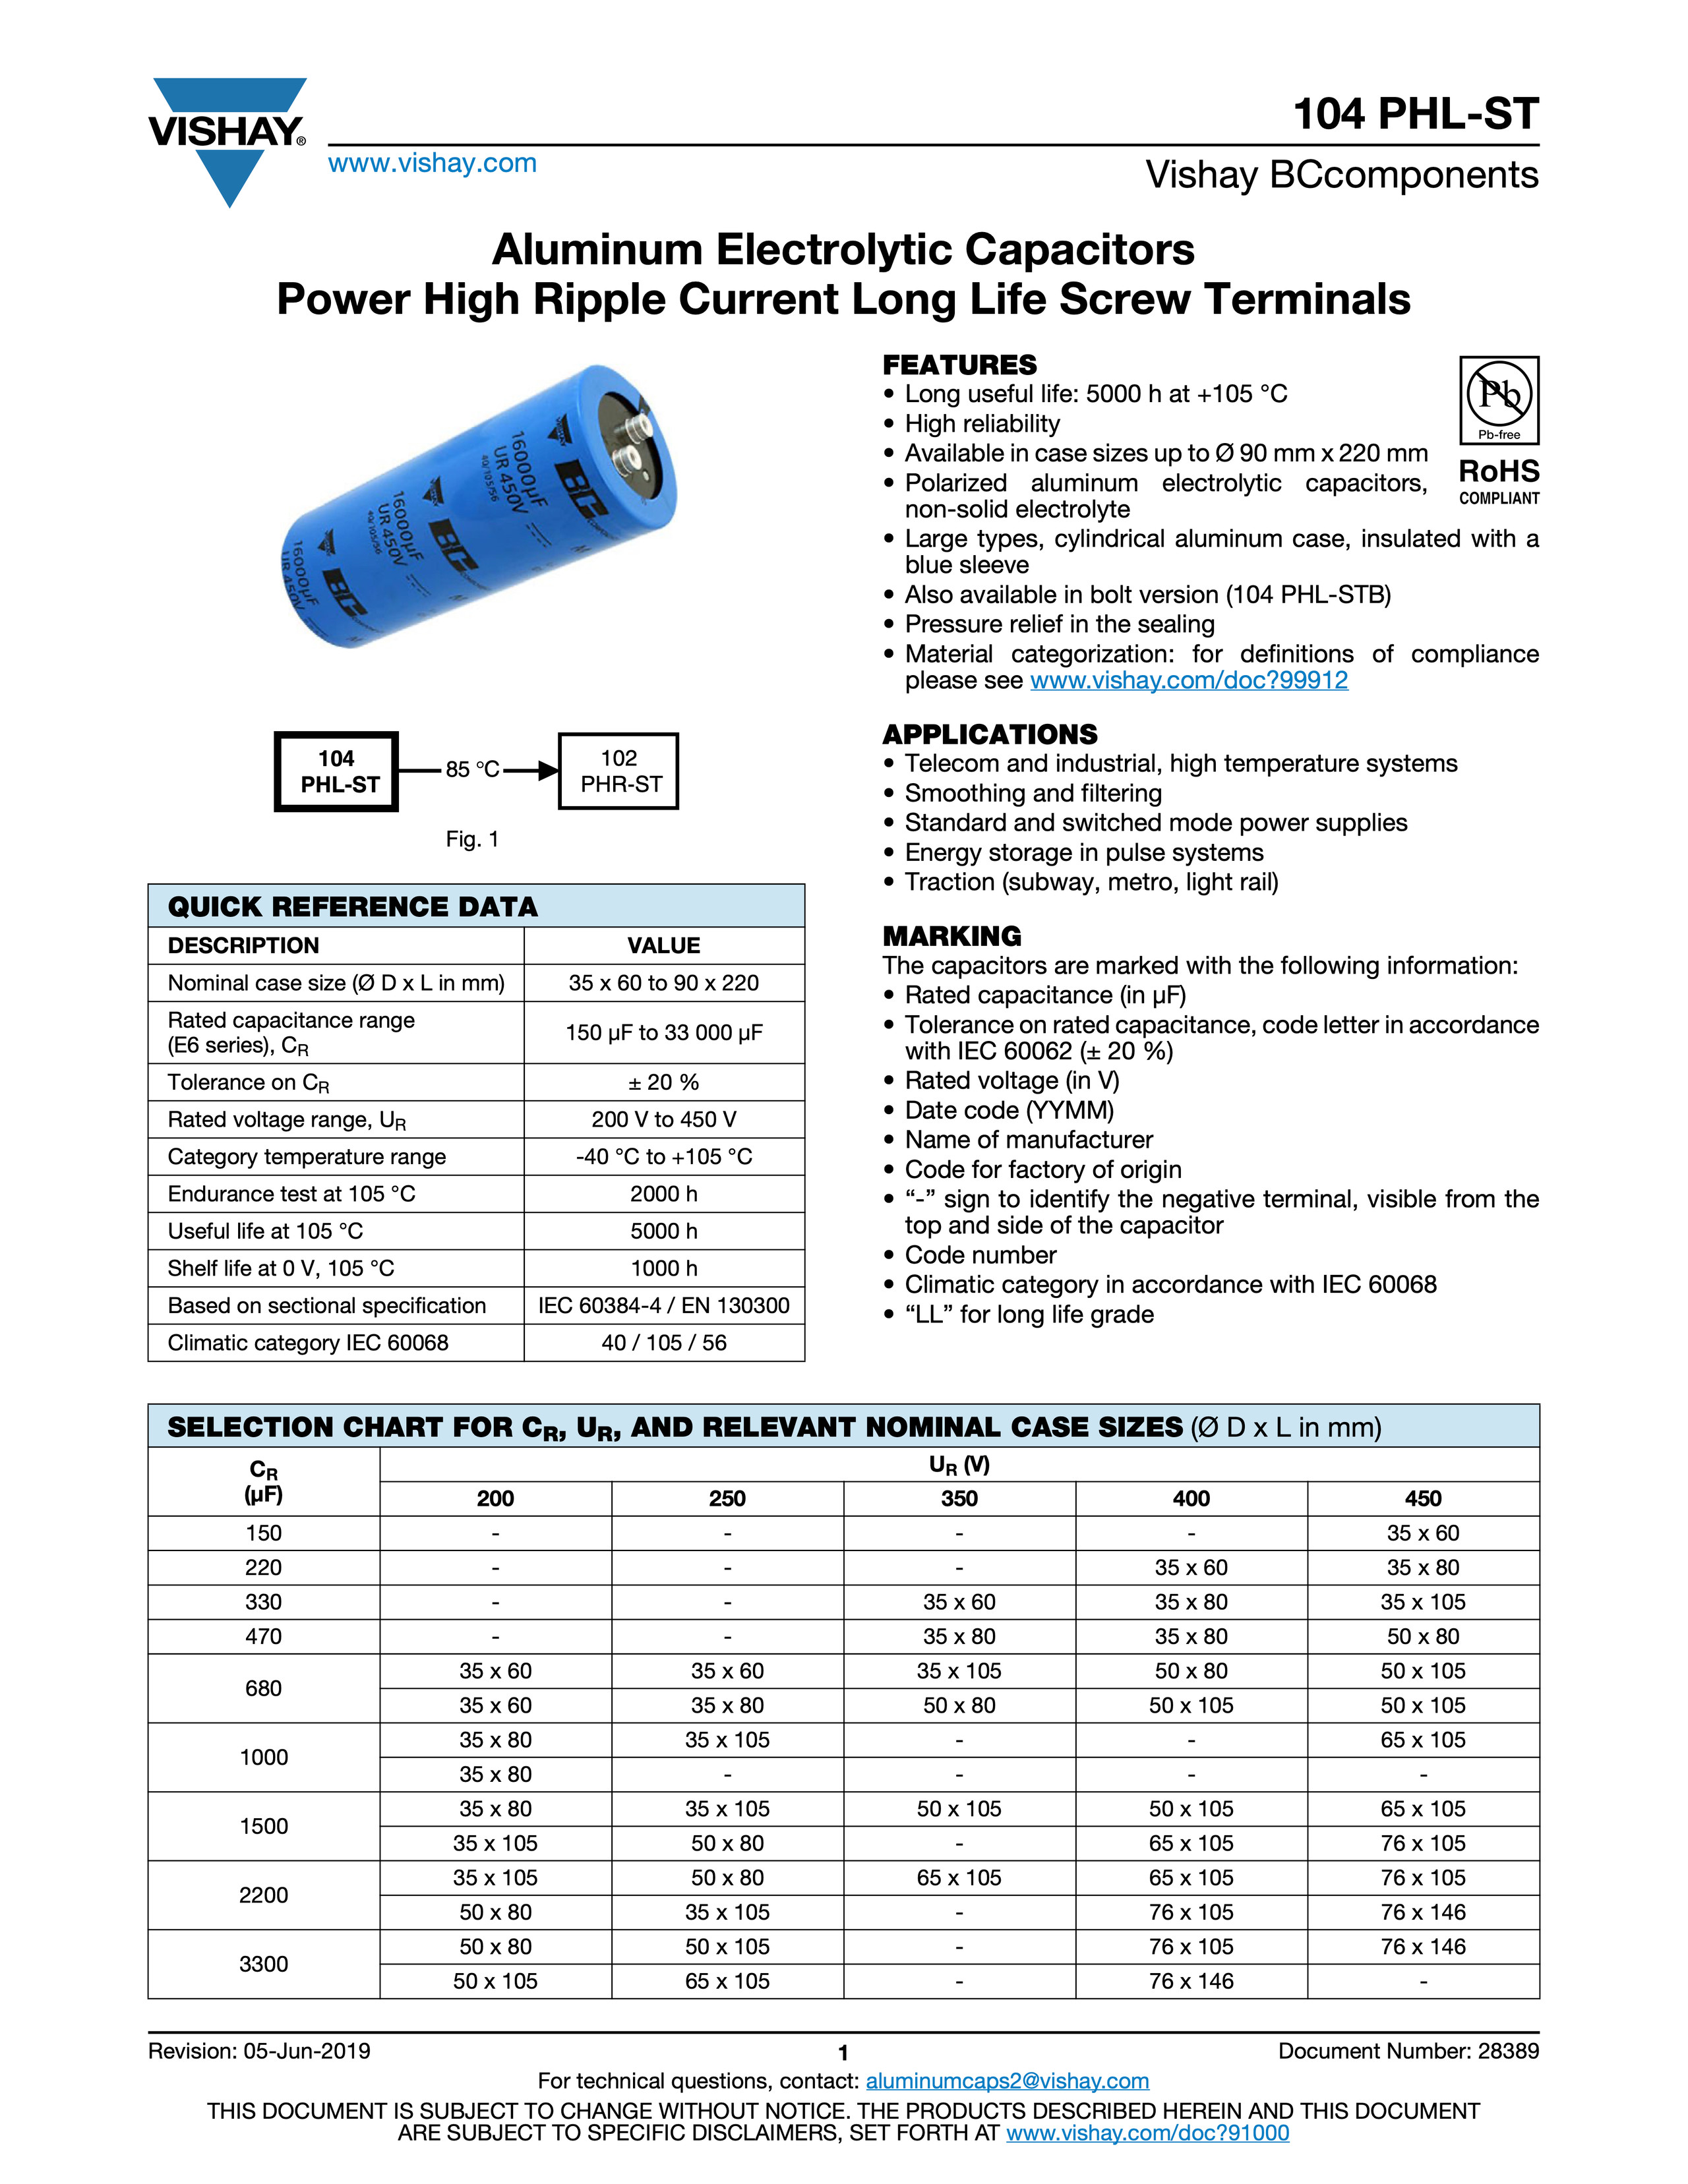 Vishay 104 PHL-ST Series Capacitor Data Sheet